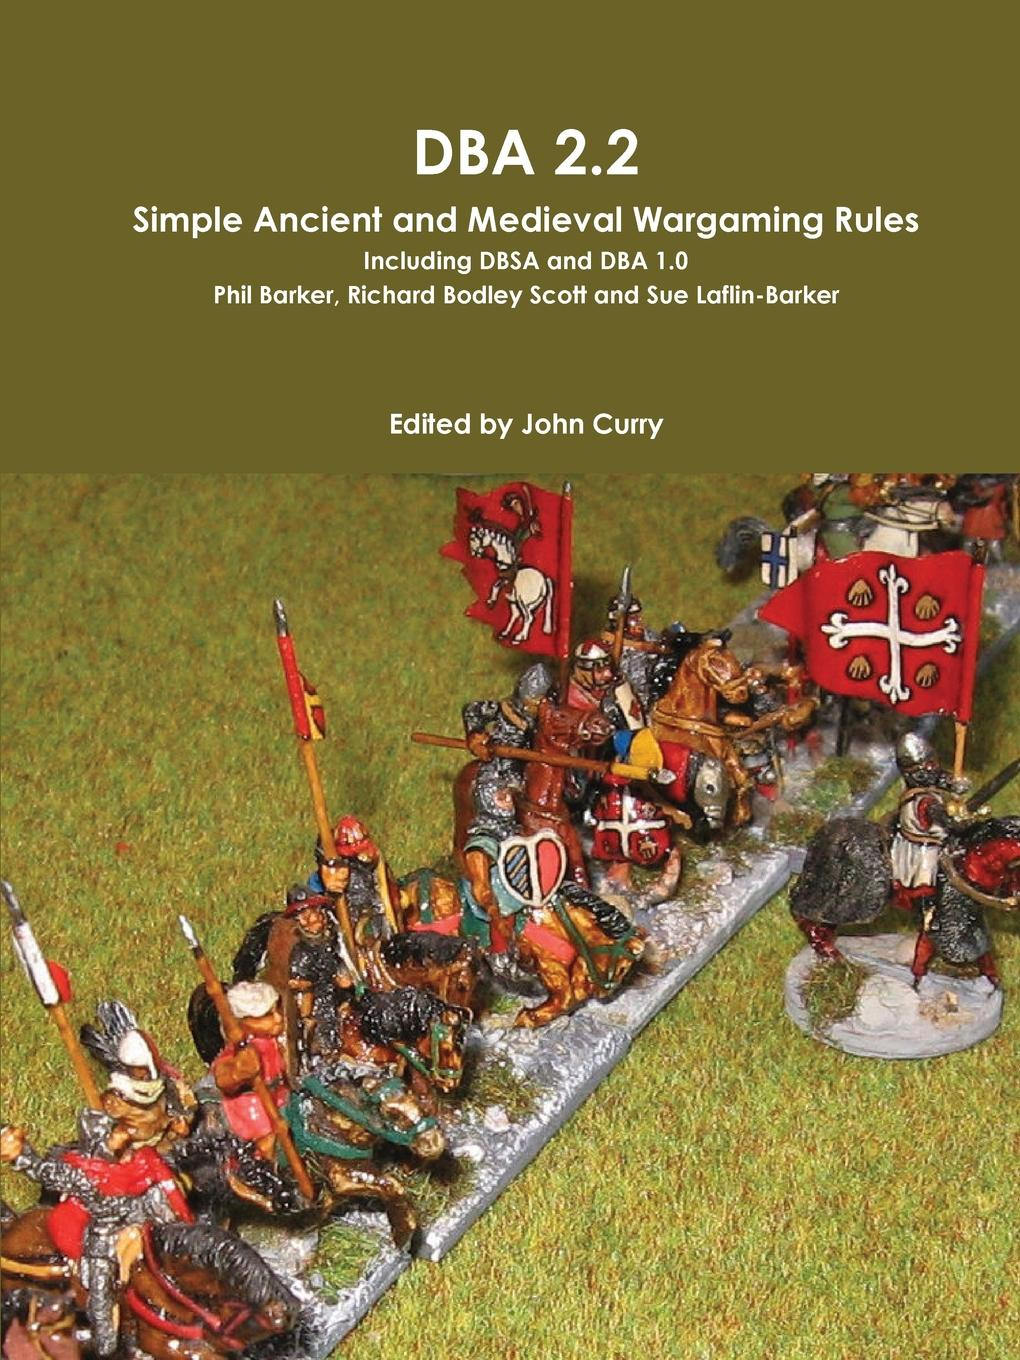 John Curry, Phil Barker, Richard Bodley Scott DBA 2.2 Simple Ancient and Medieval Wargaming Rules Including Dbsa and DBA 1.0 hoyle s rules of games